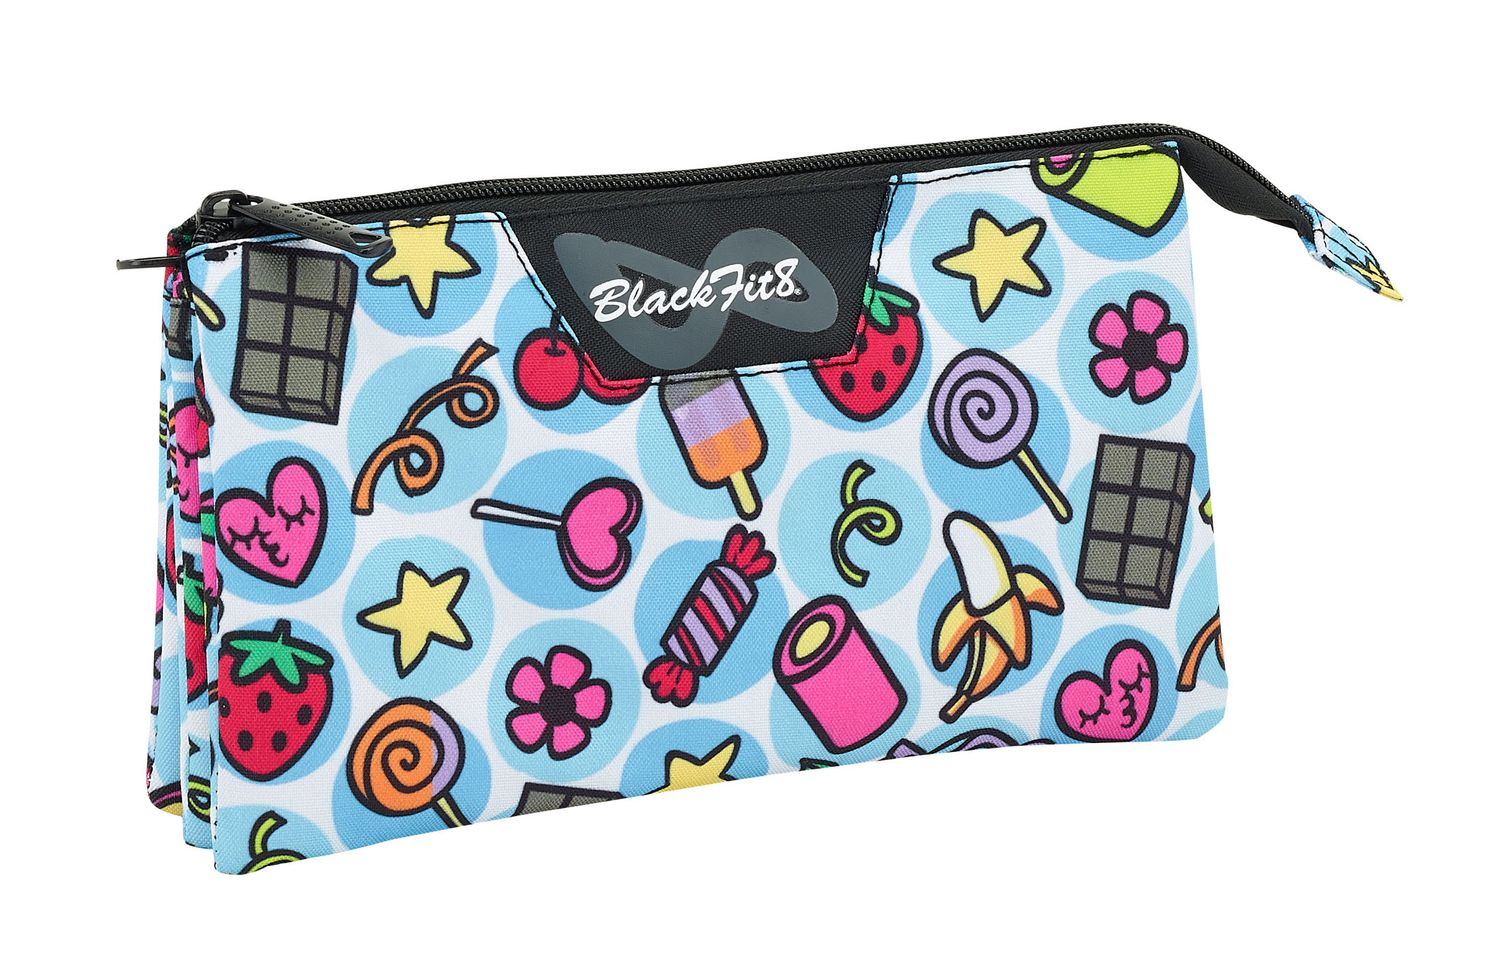 Blackfit Sweet Triple pencil case